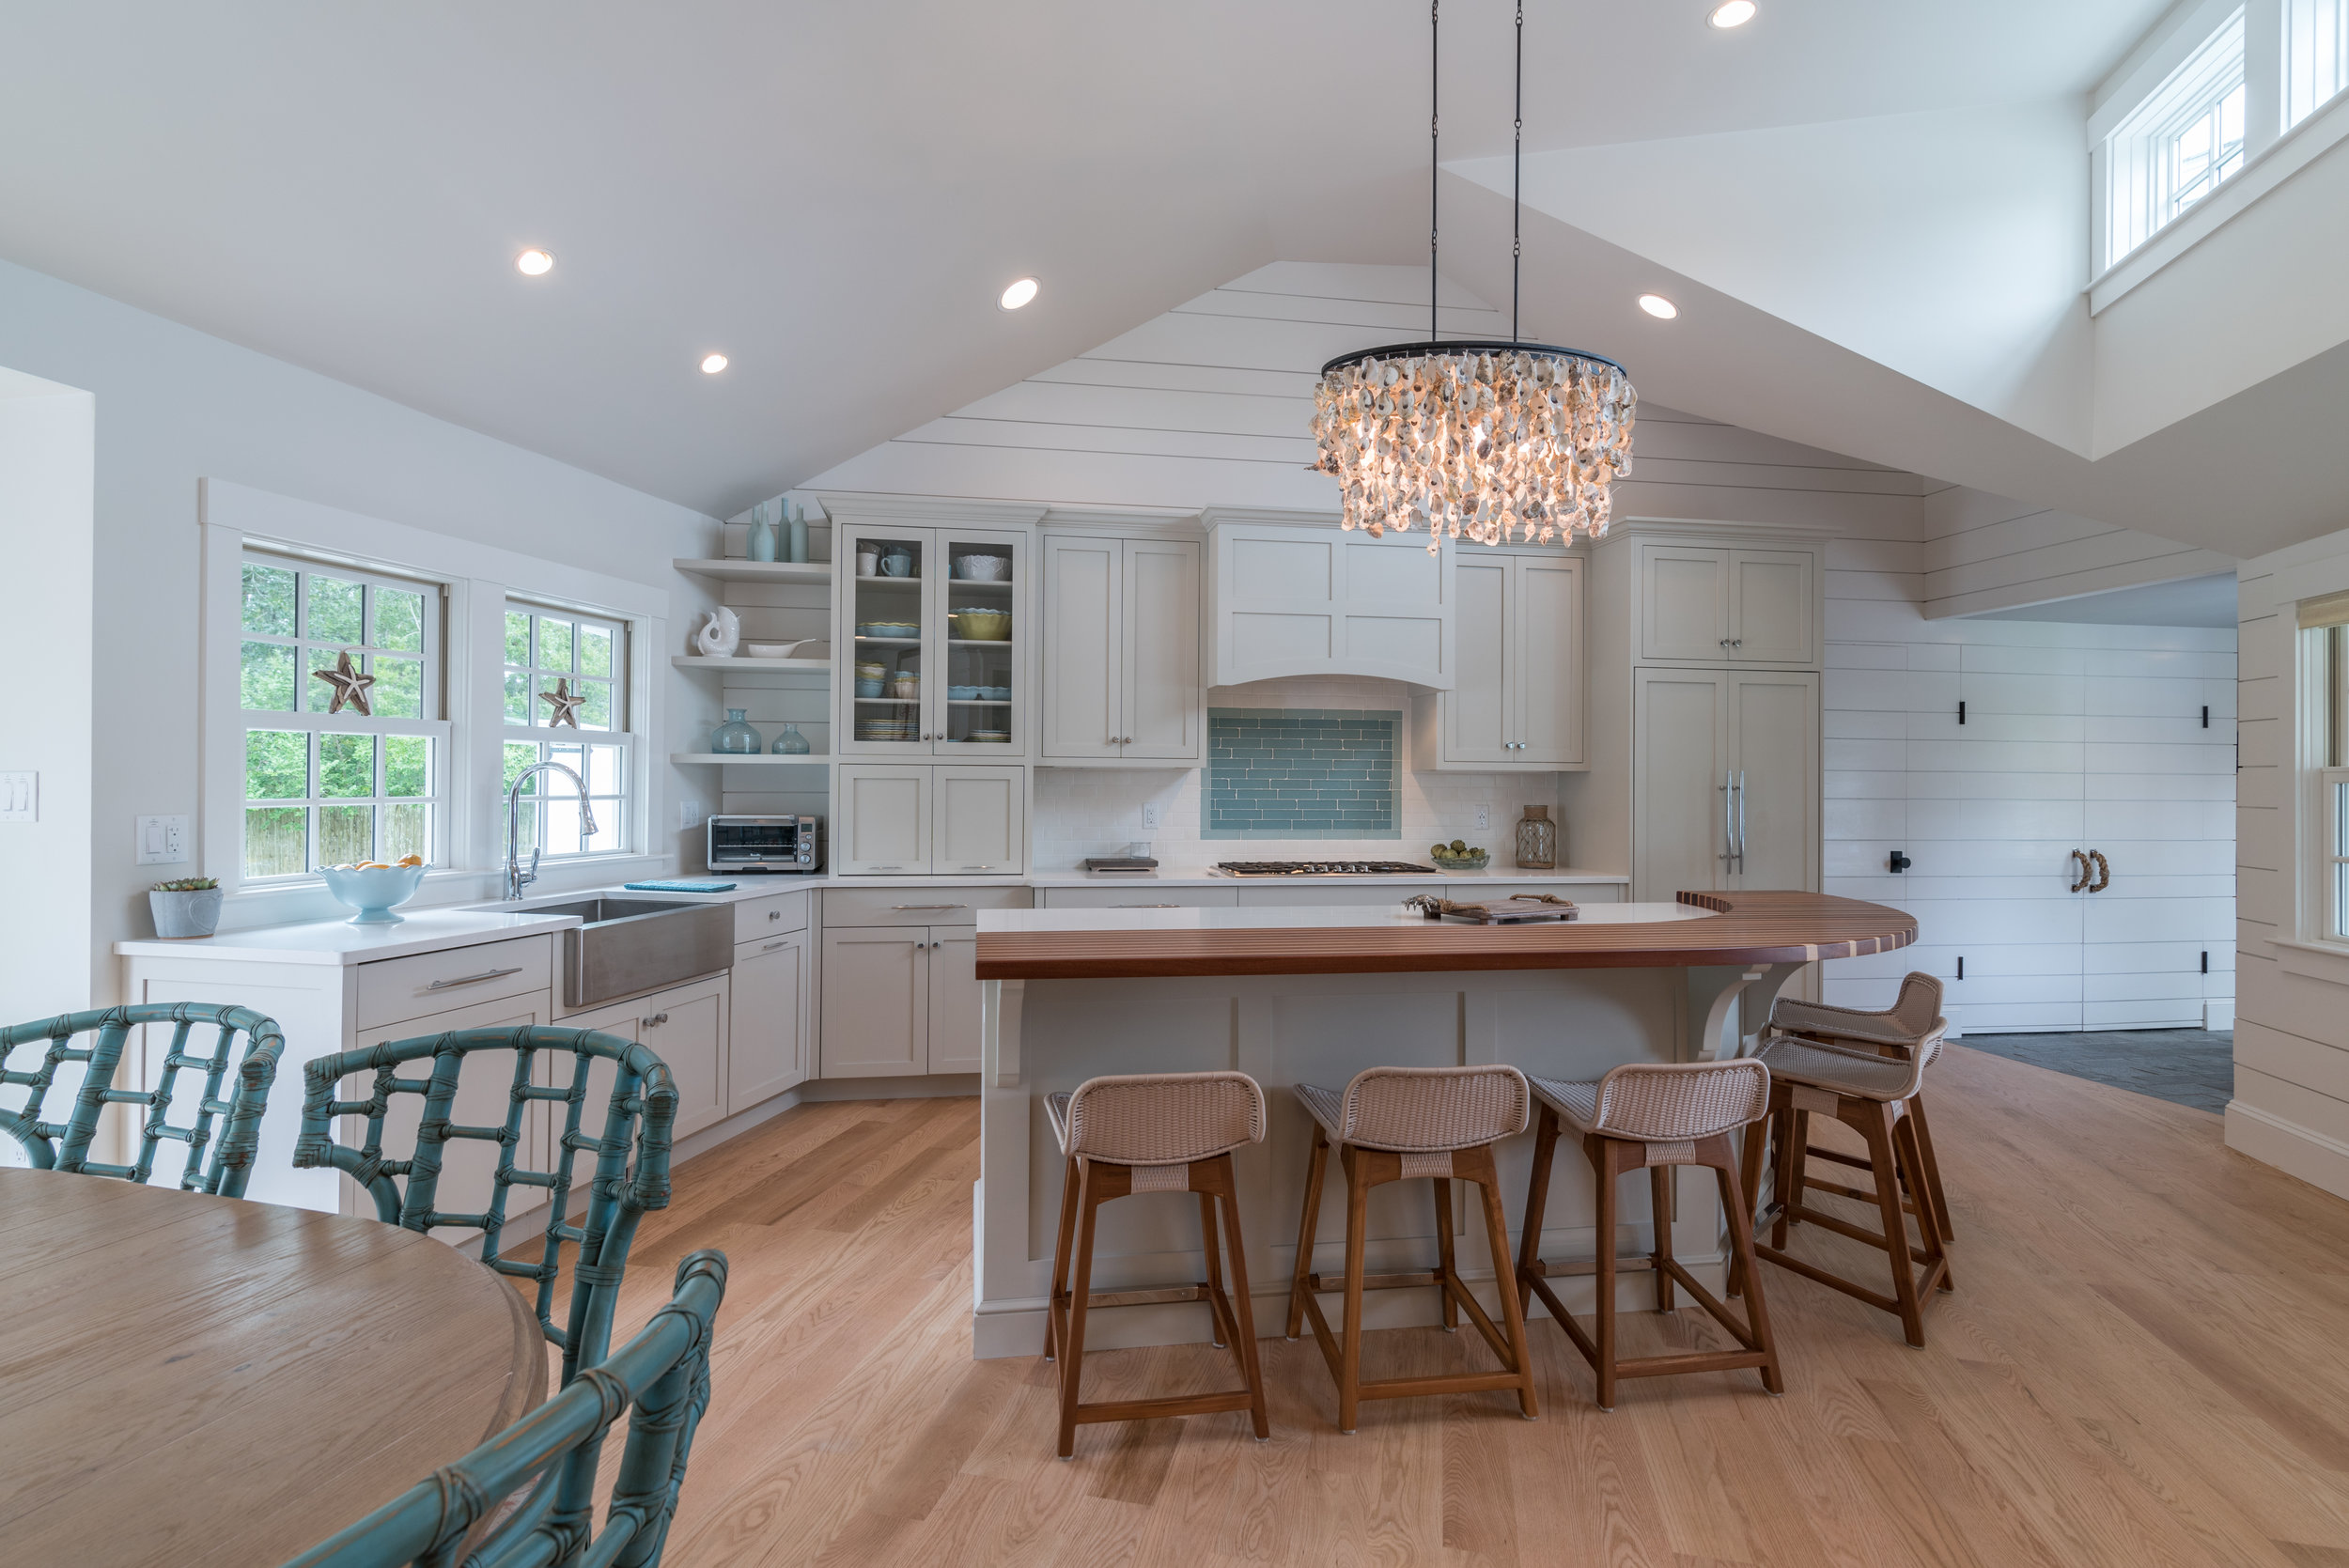 Kitchen renovation on the Cape. Family's summer home.